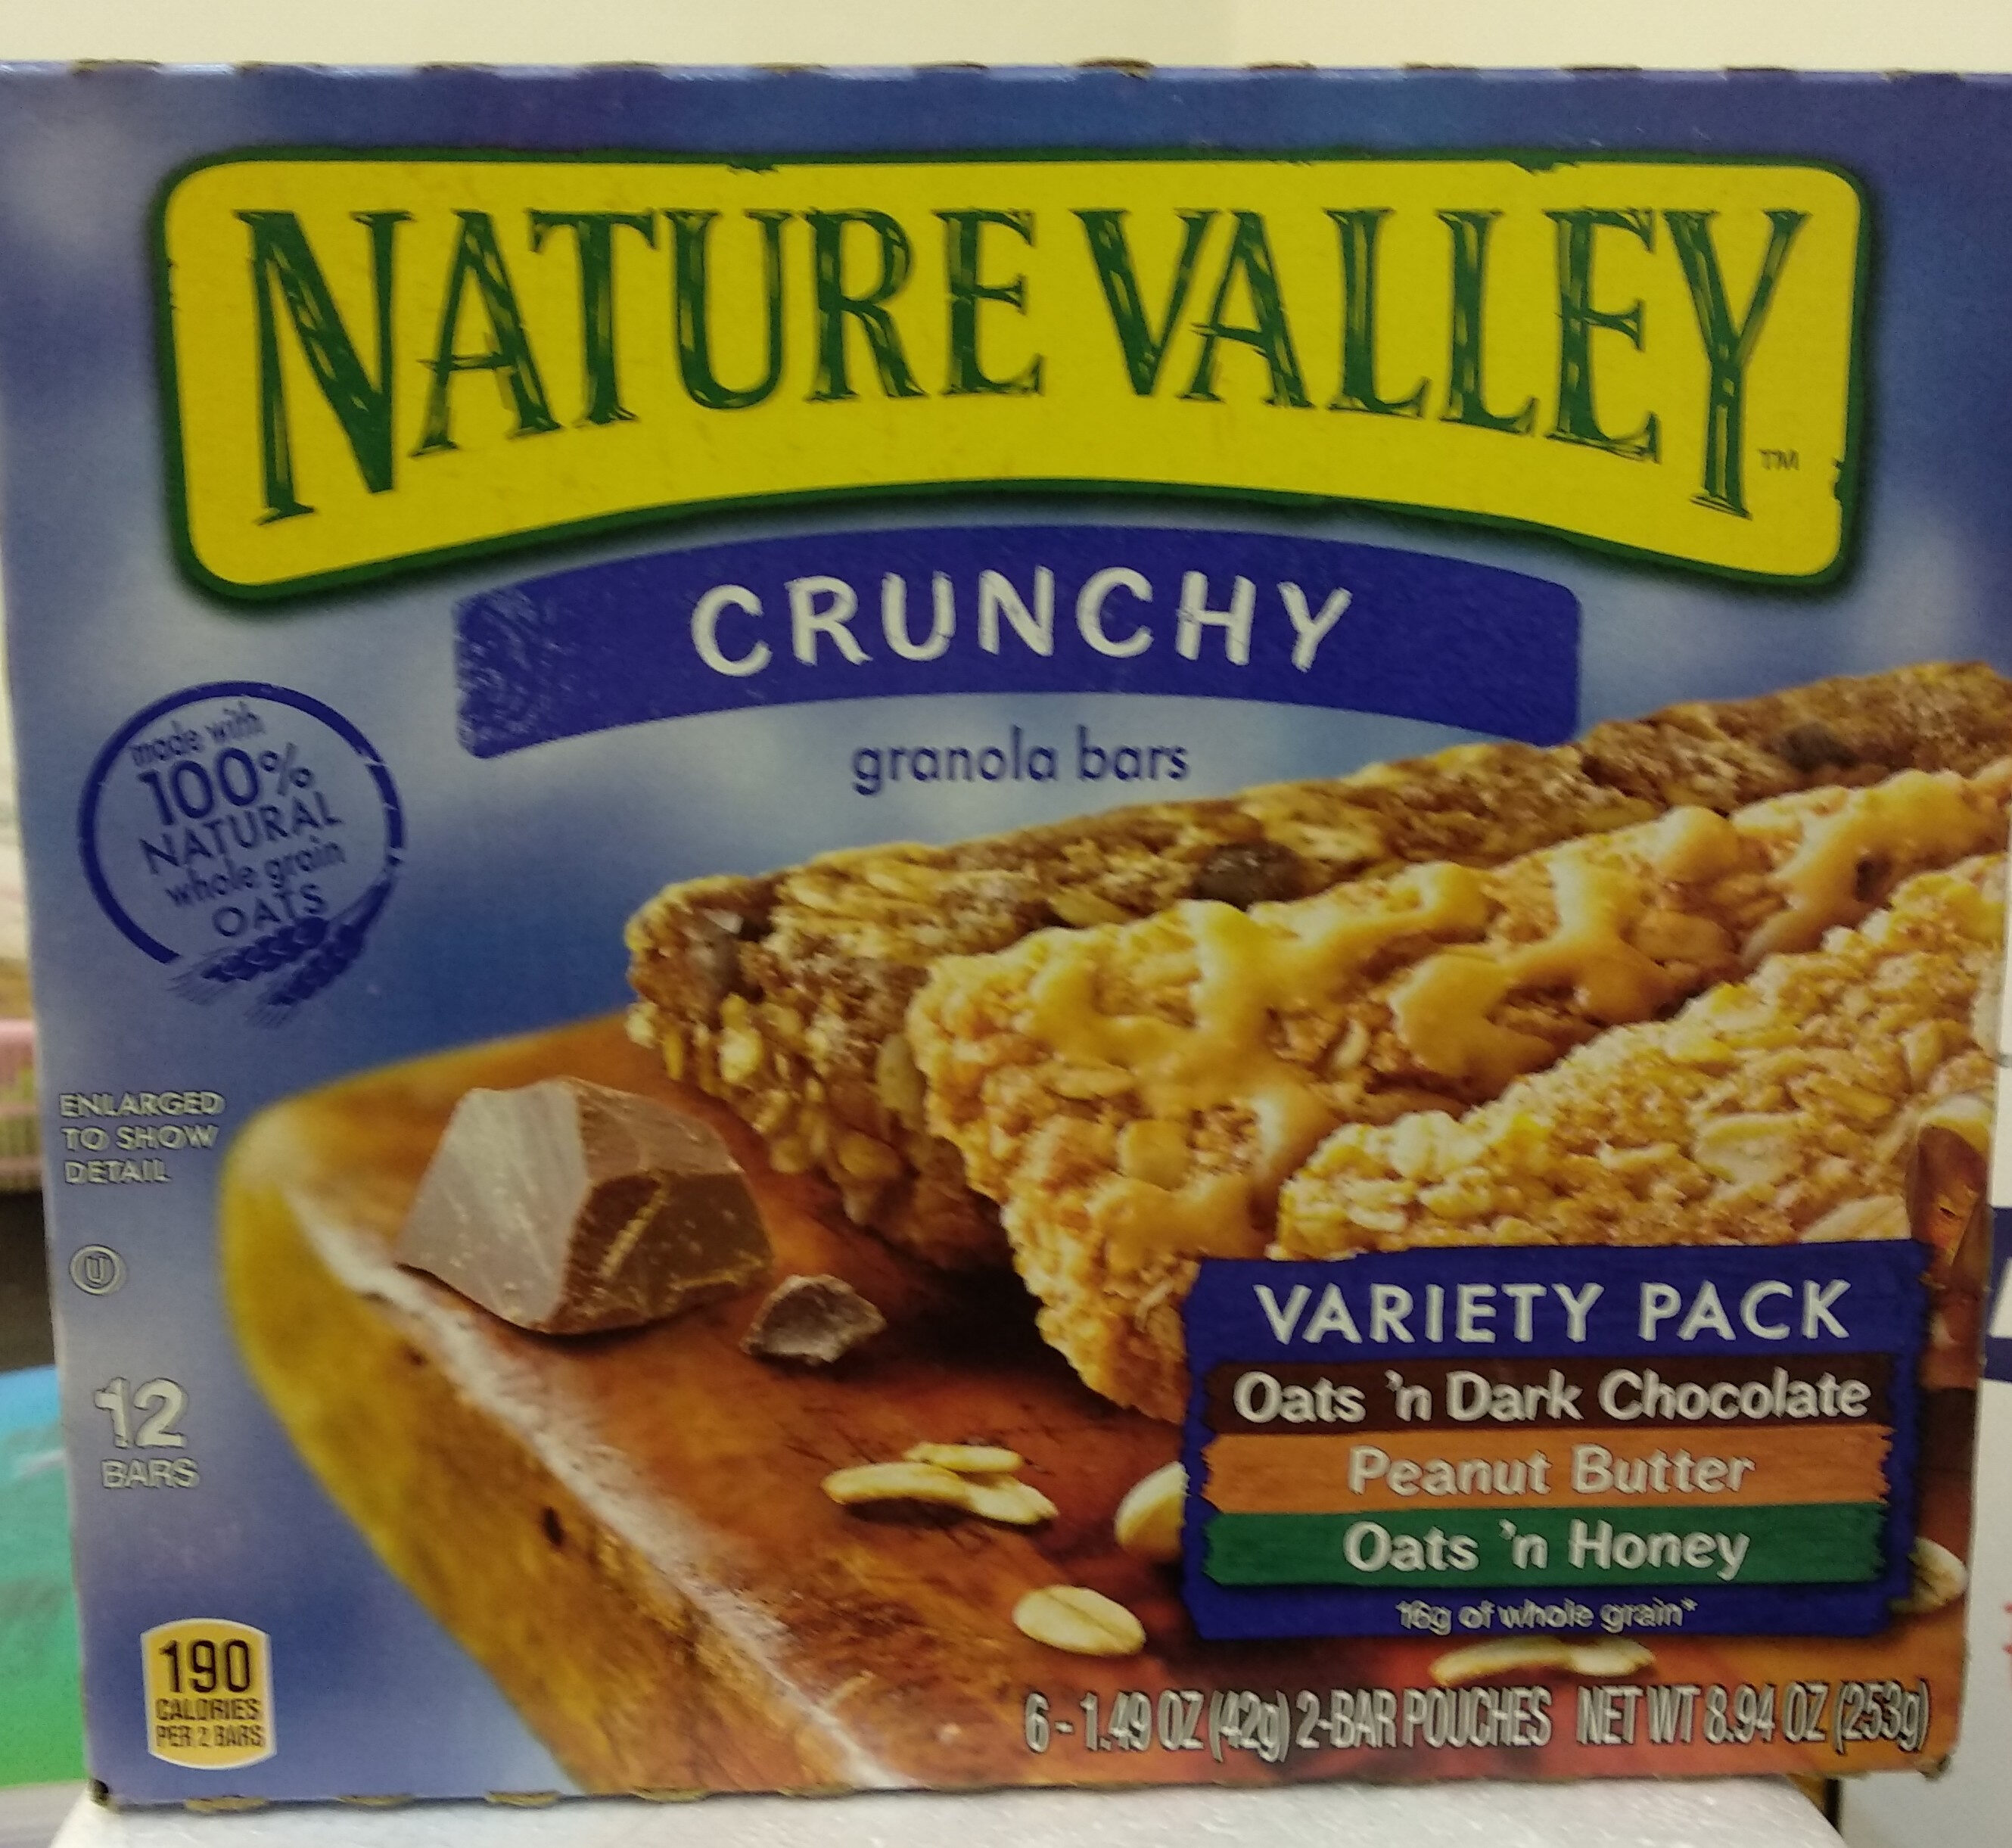 Nature Valley Crunchy Granola Bars Variety Pack - 6 CT - Product